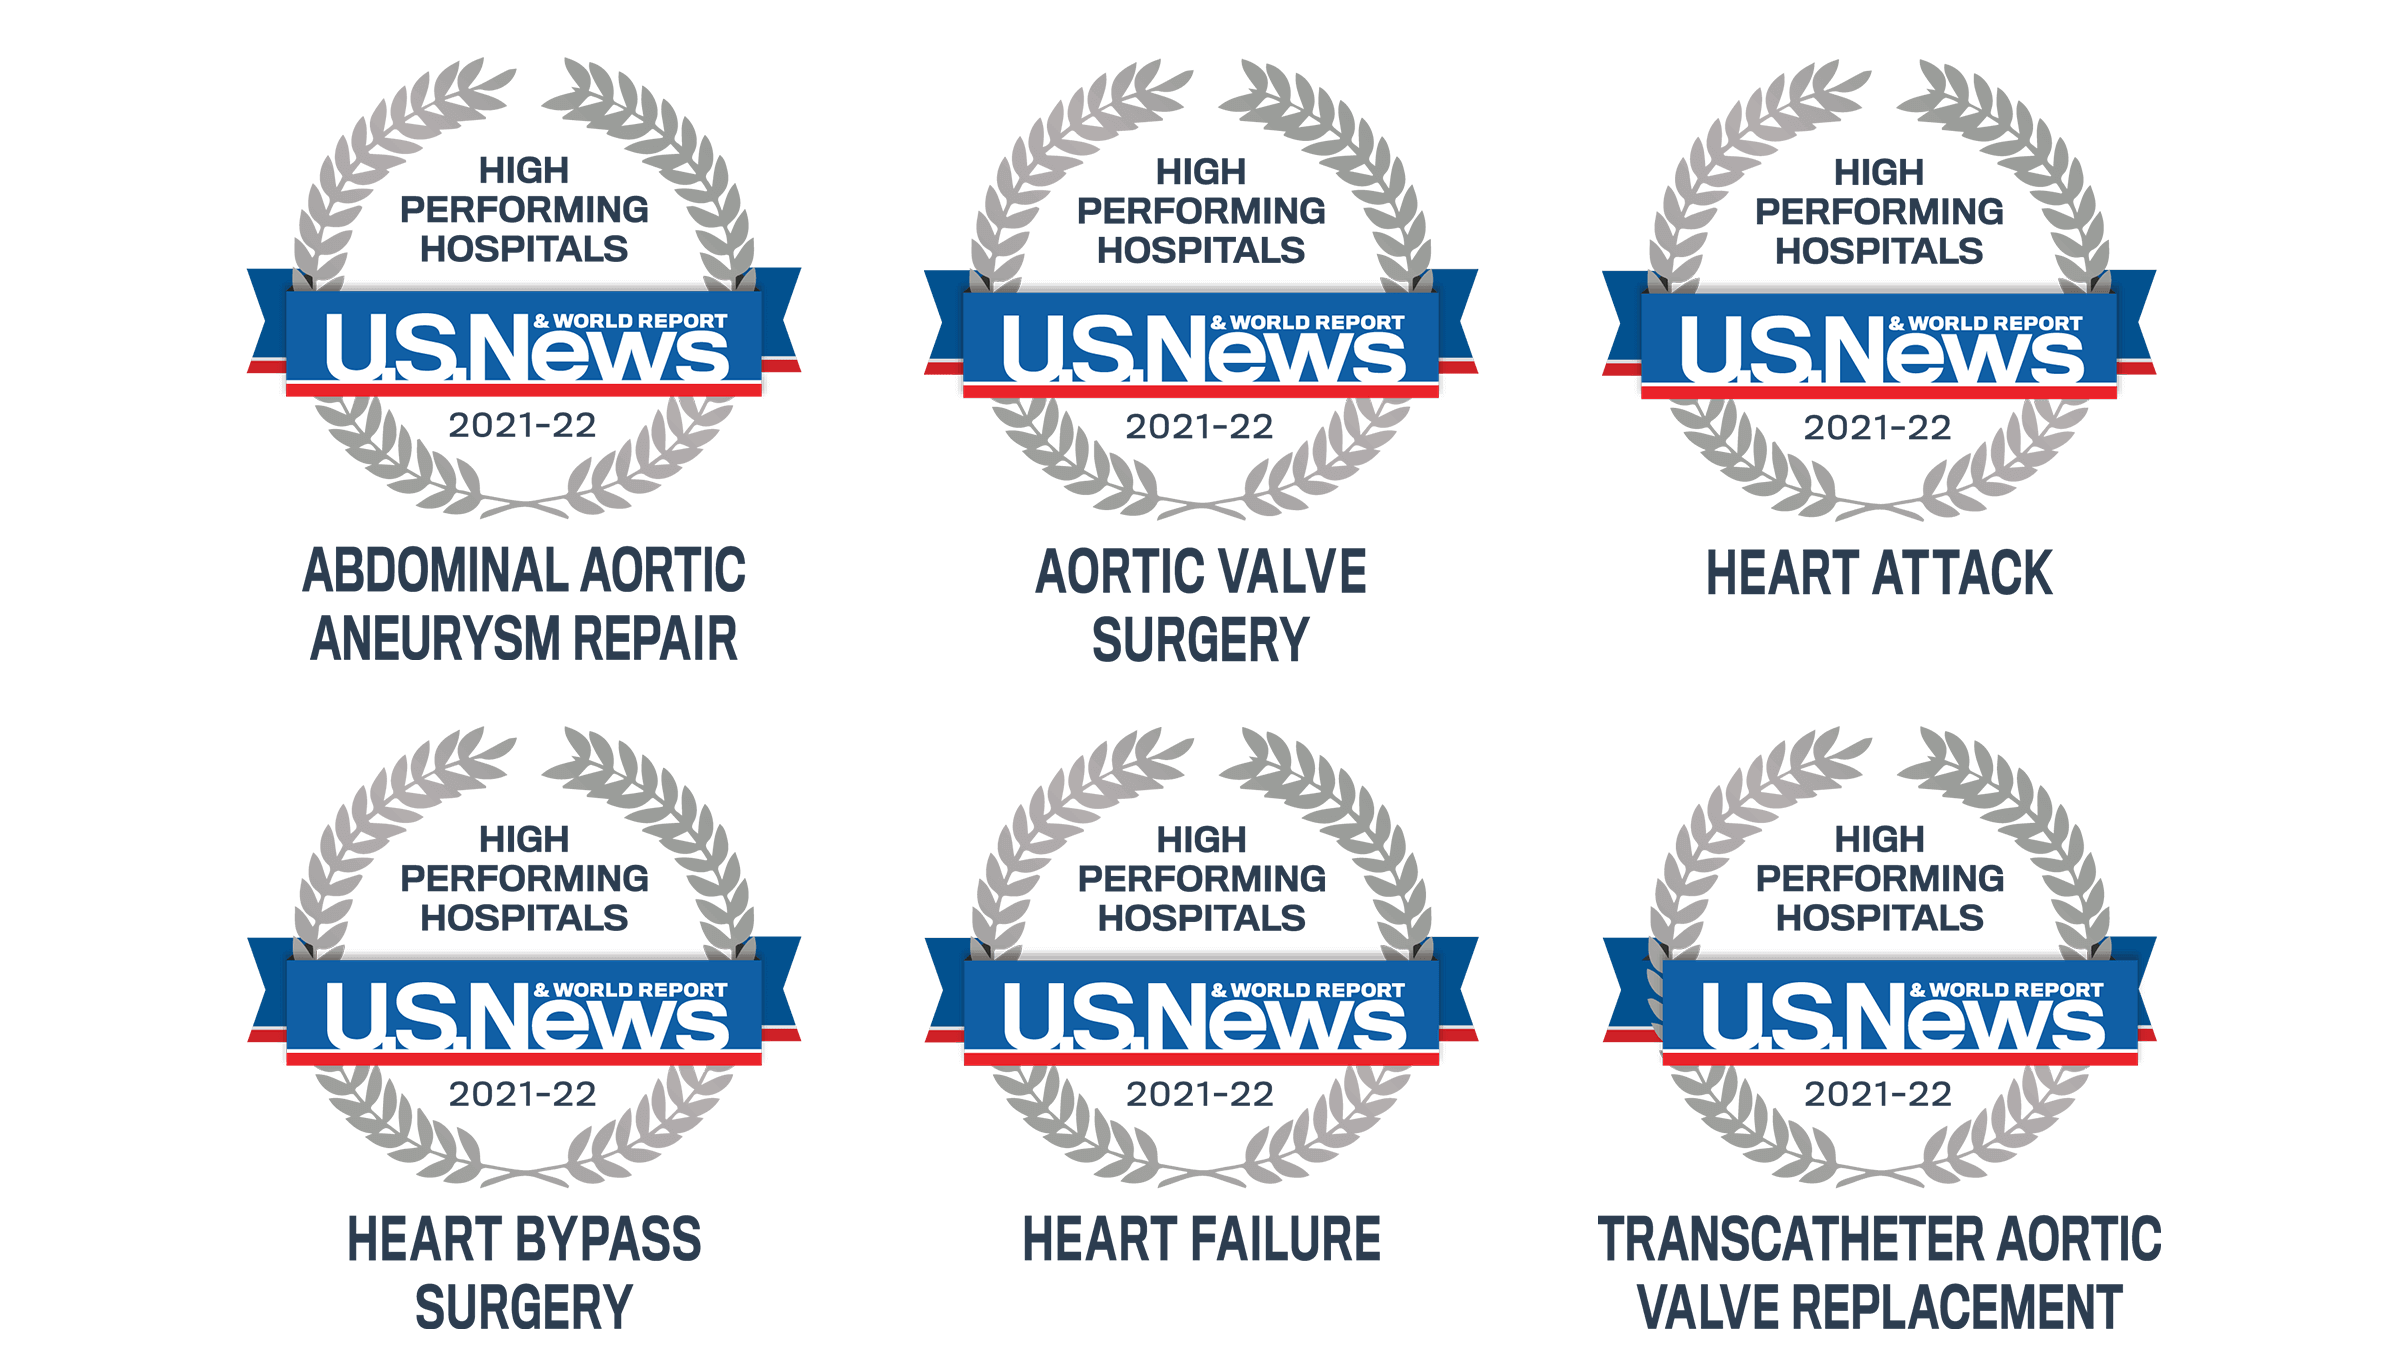 Rated as a High Performing Hospital for 2021 and 2022 in Abdominal Aortic Aneurysm Repair, Aortic Valve Surgery, Heart Attack, Heart Bypass Surgery, Heart Failure, and Transcatheter Aortic Valve Replacement.